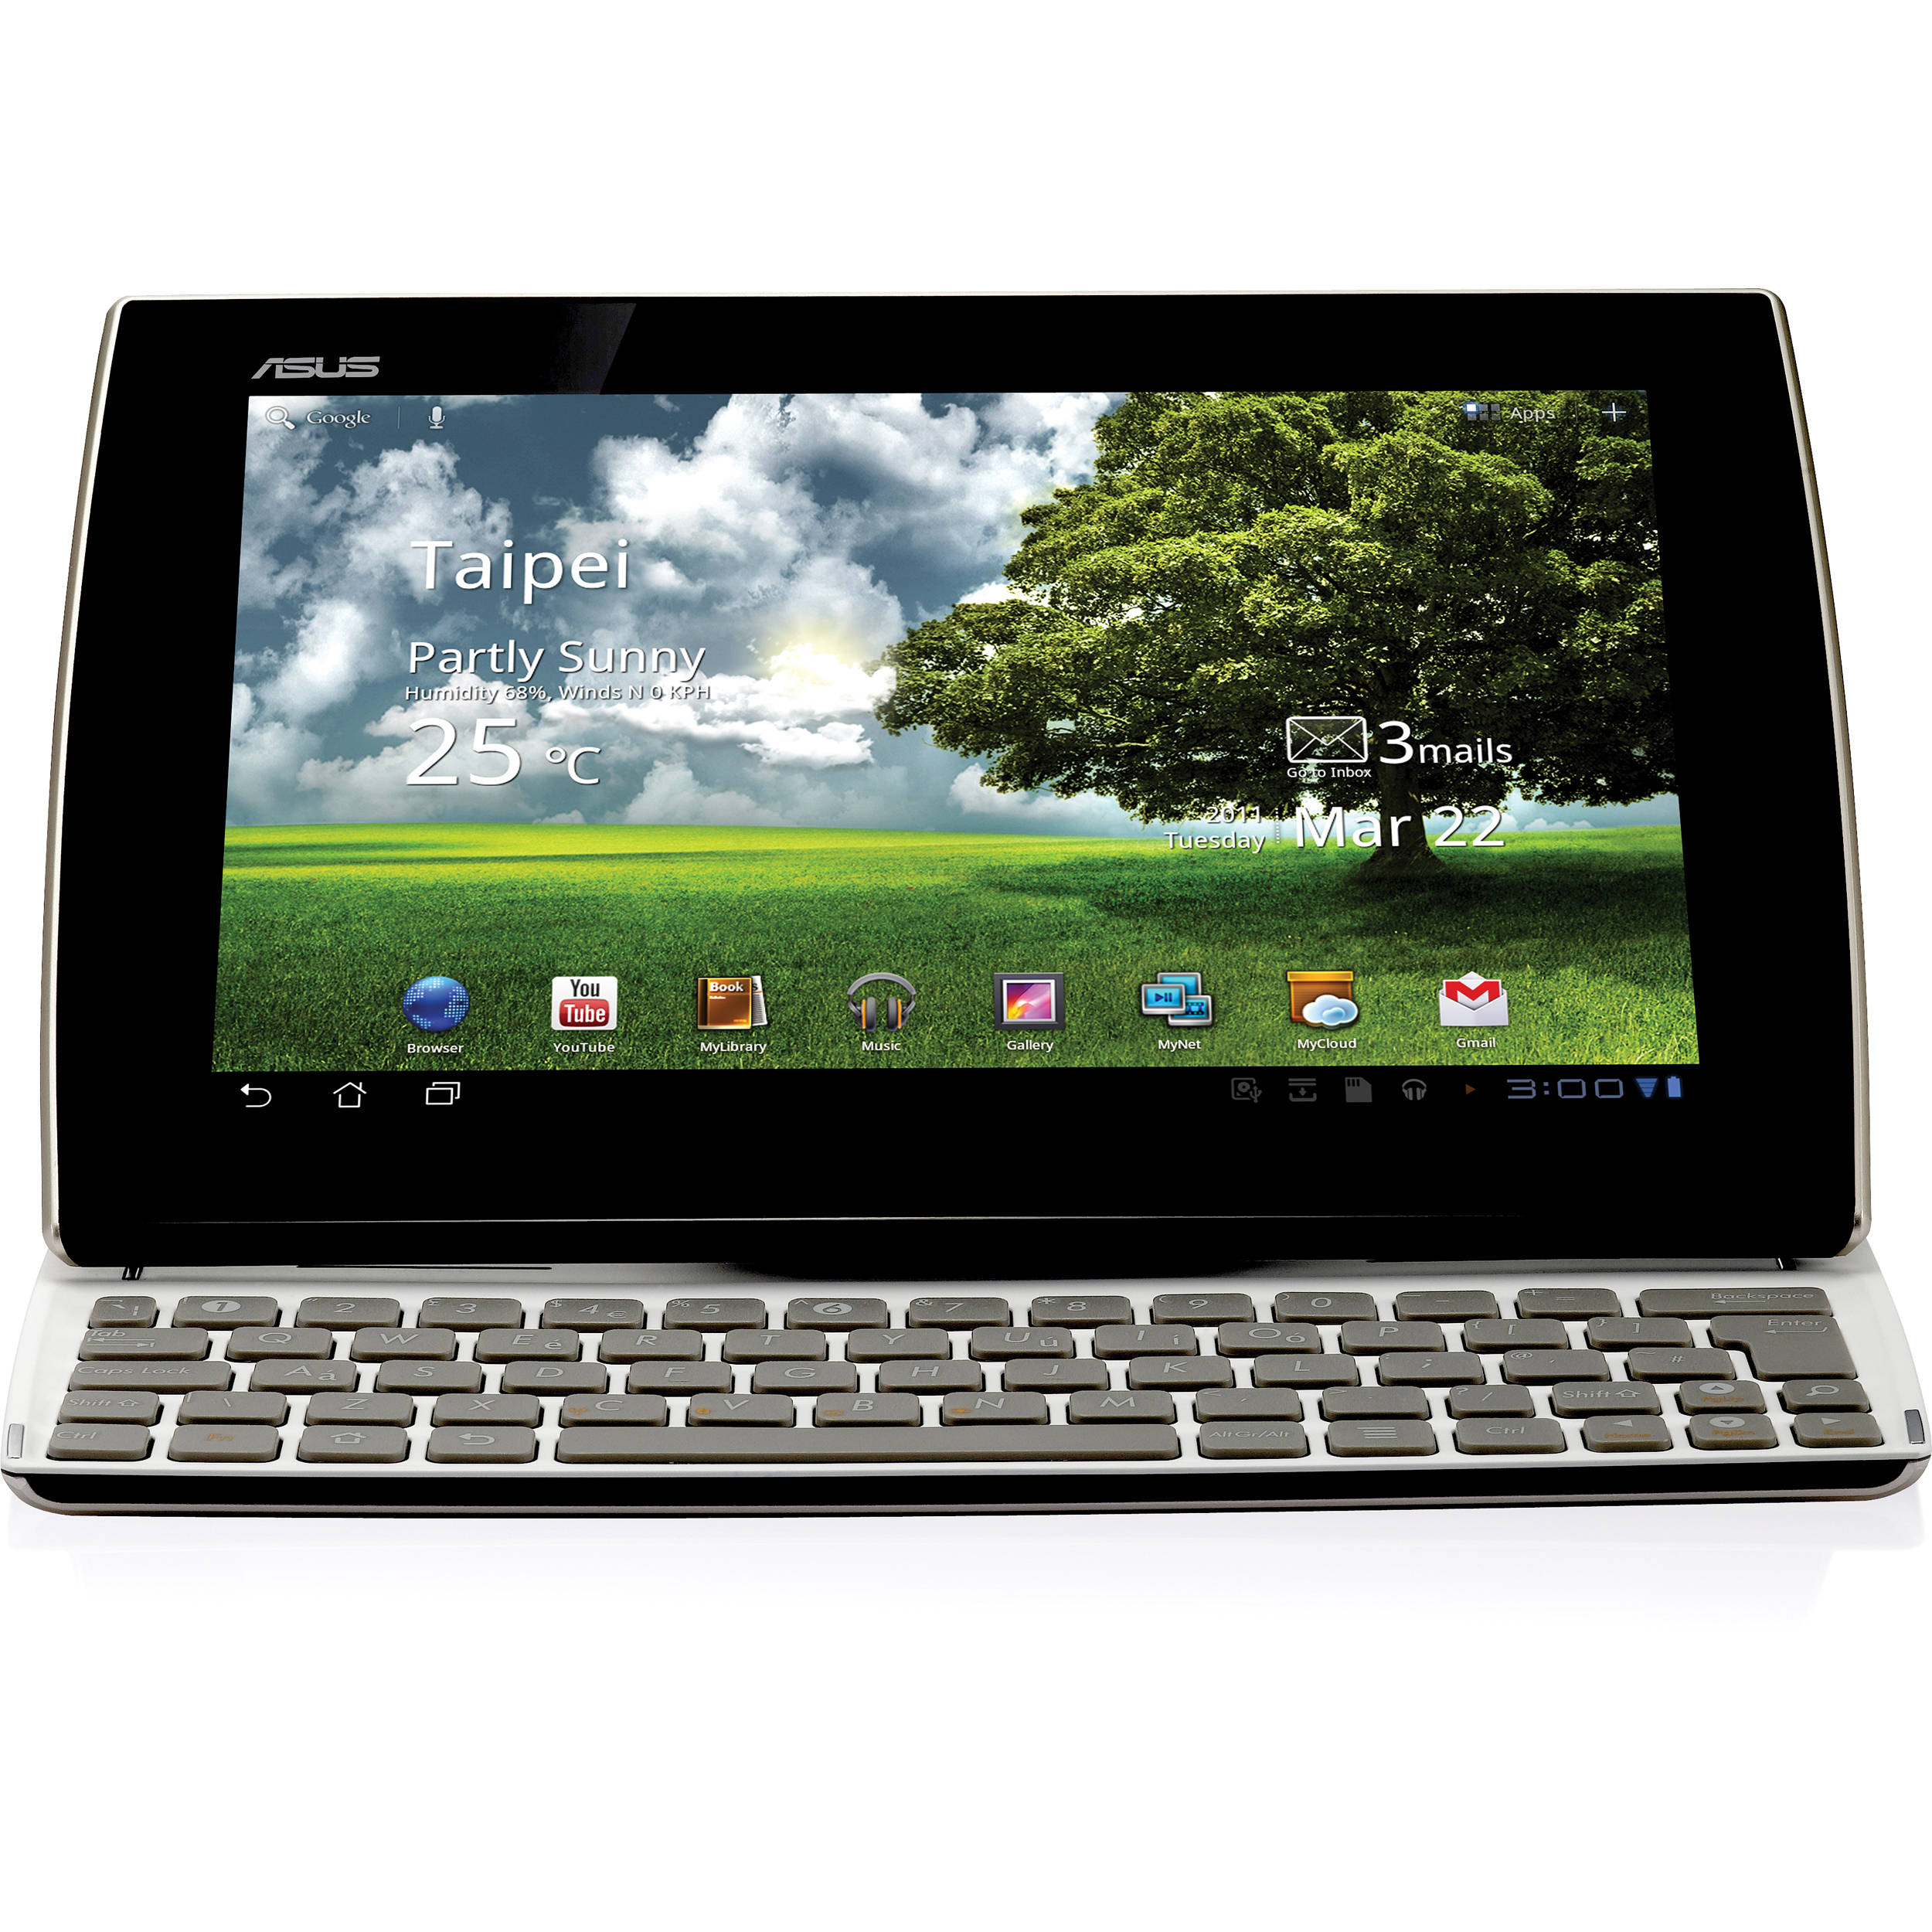 Asus Eee Pad Slider SL101 Treiber Windows 7